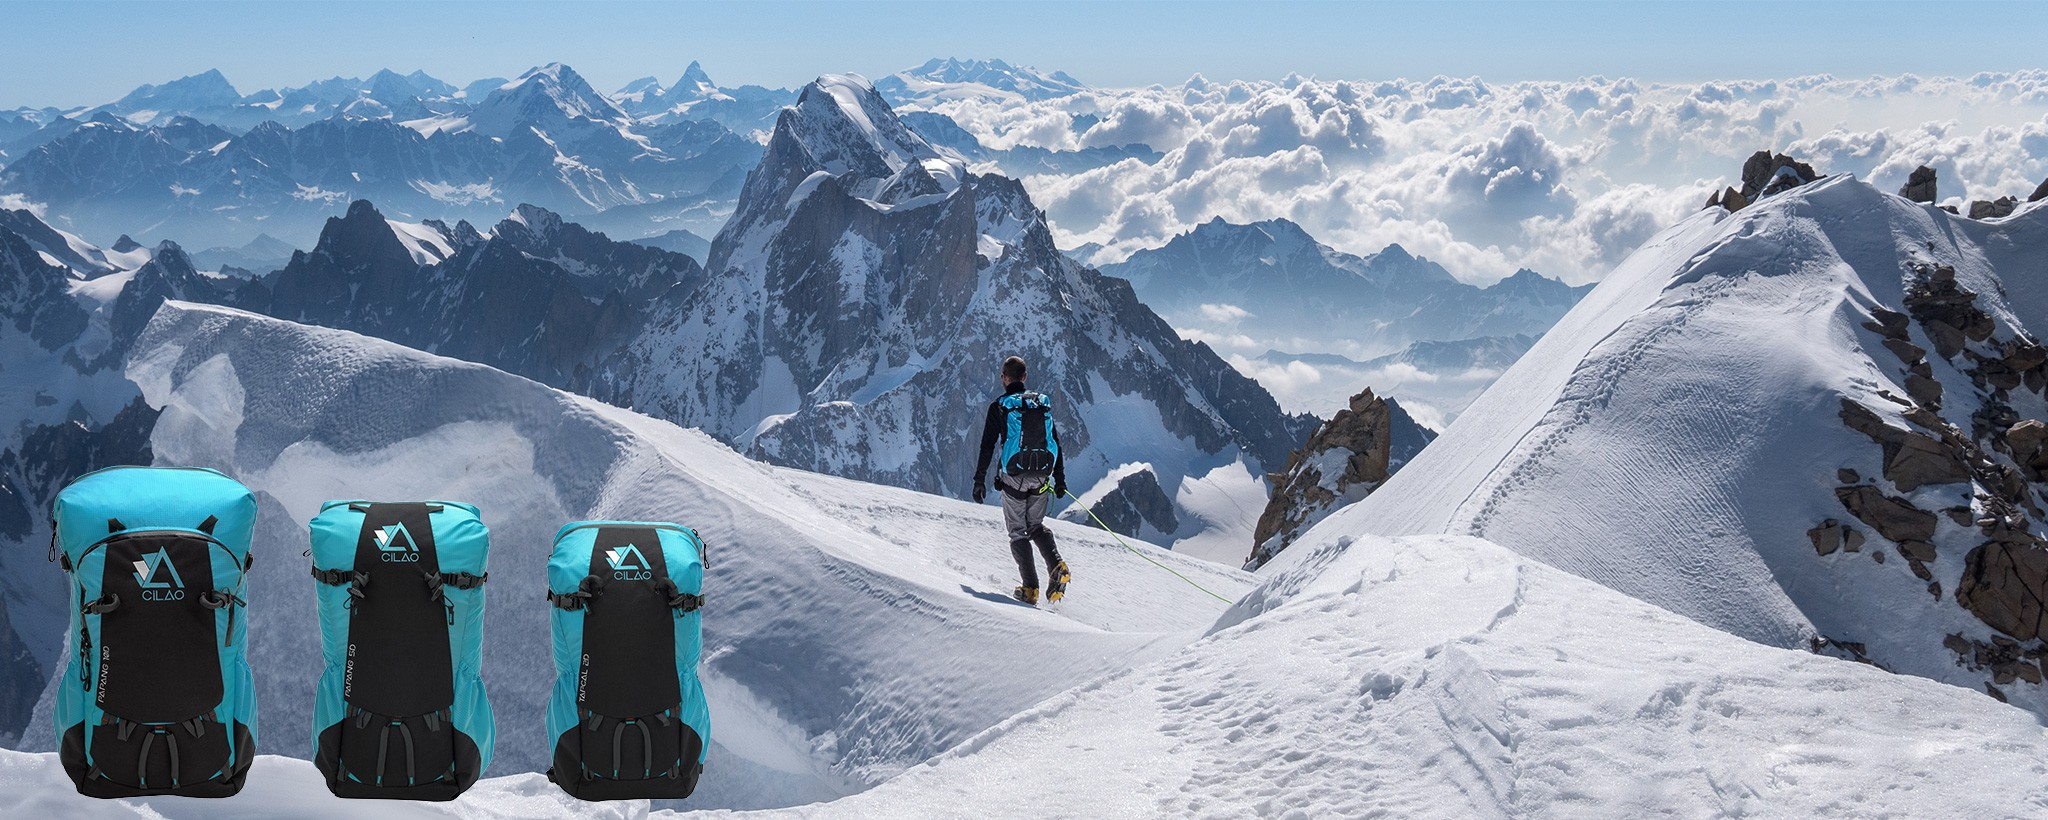 Moutaineering backpacks - conquer mountain peaks - tapcal 2d - papang 5d 10d